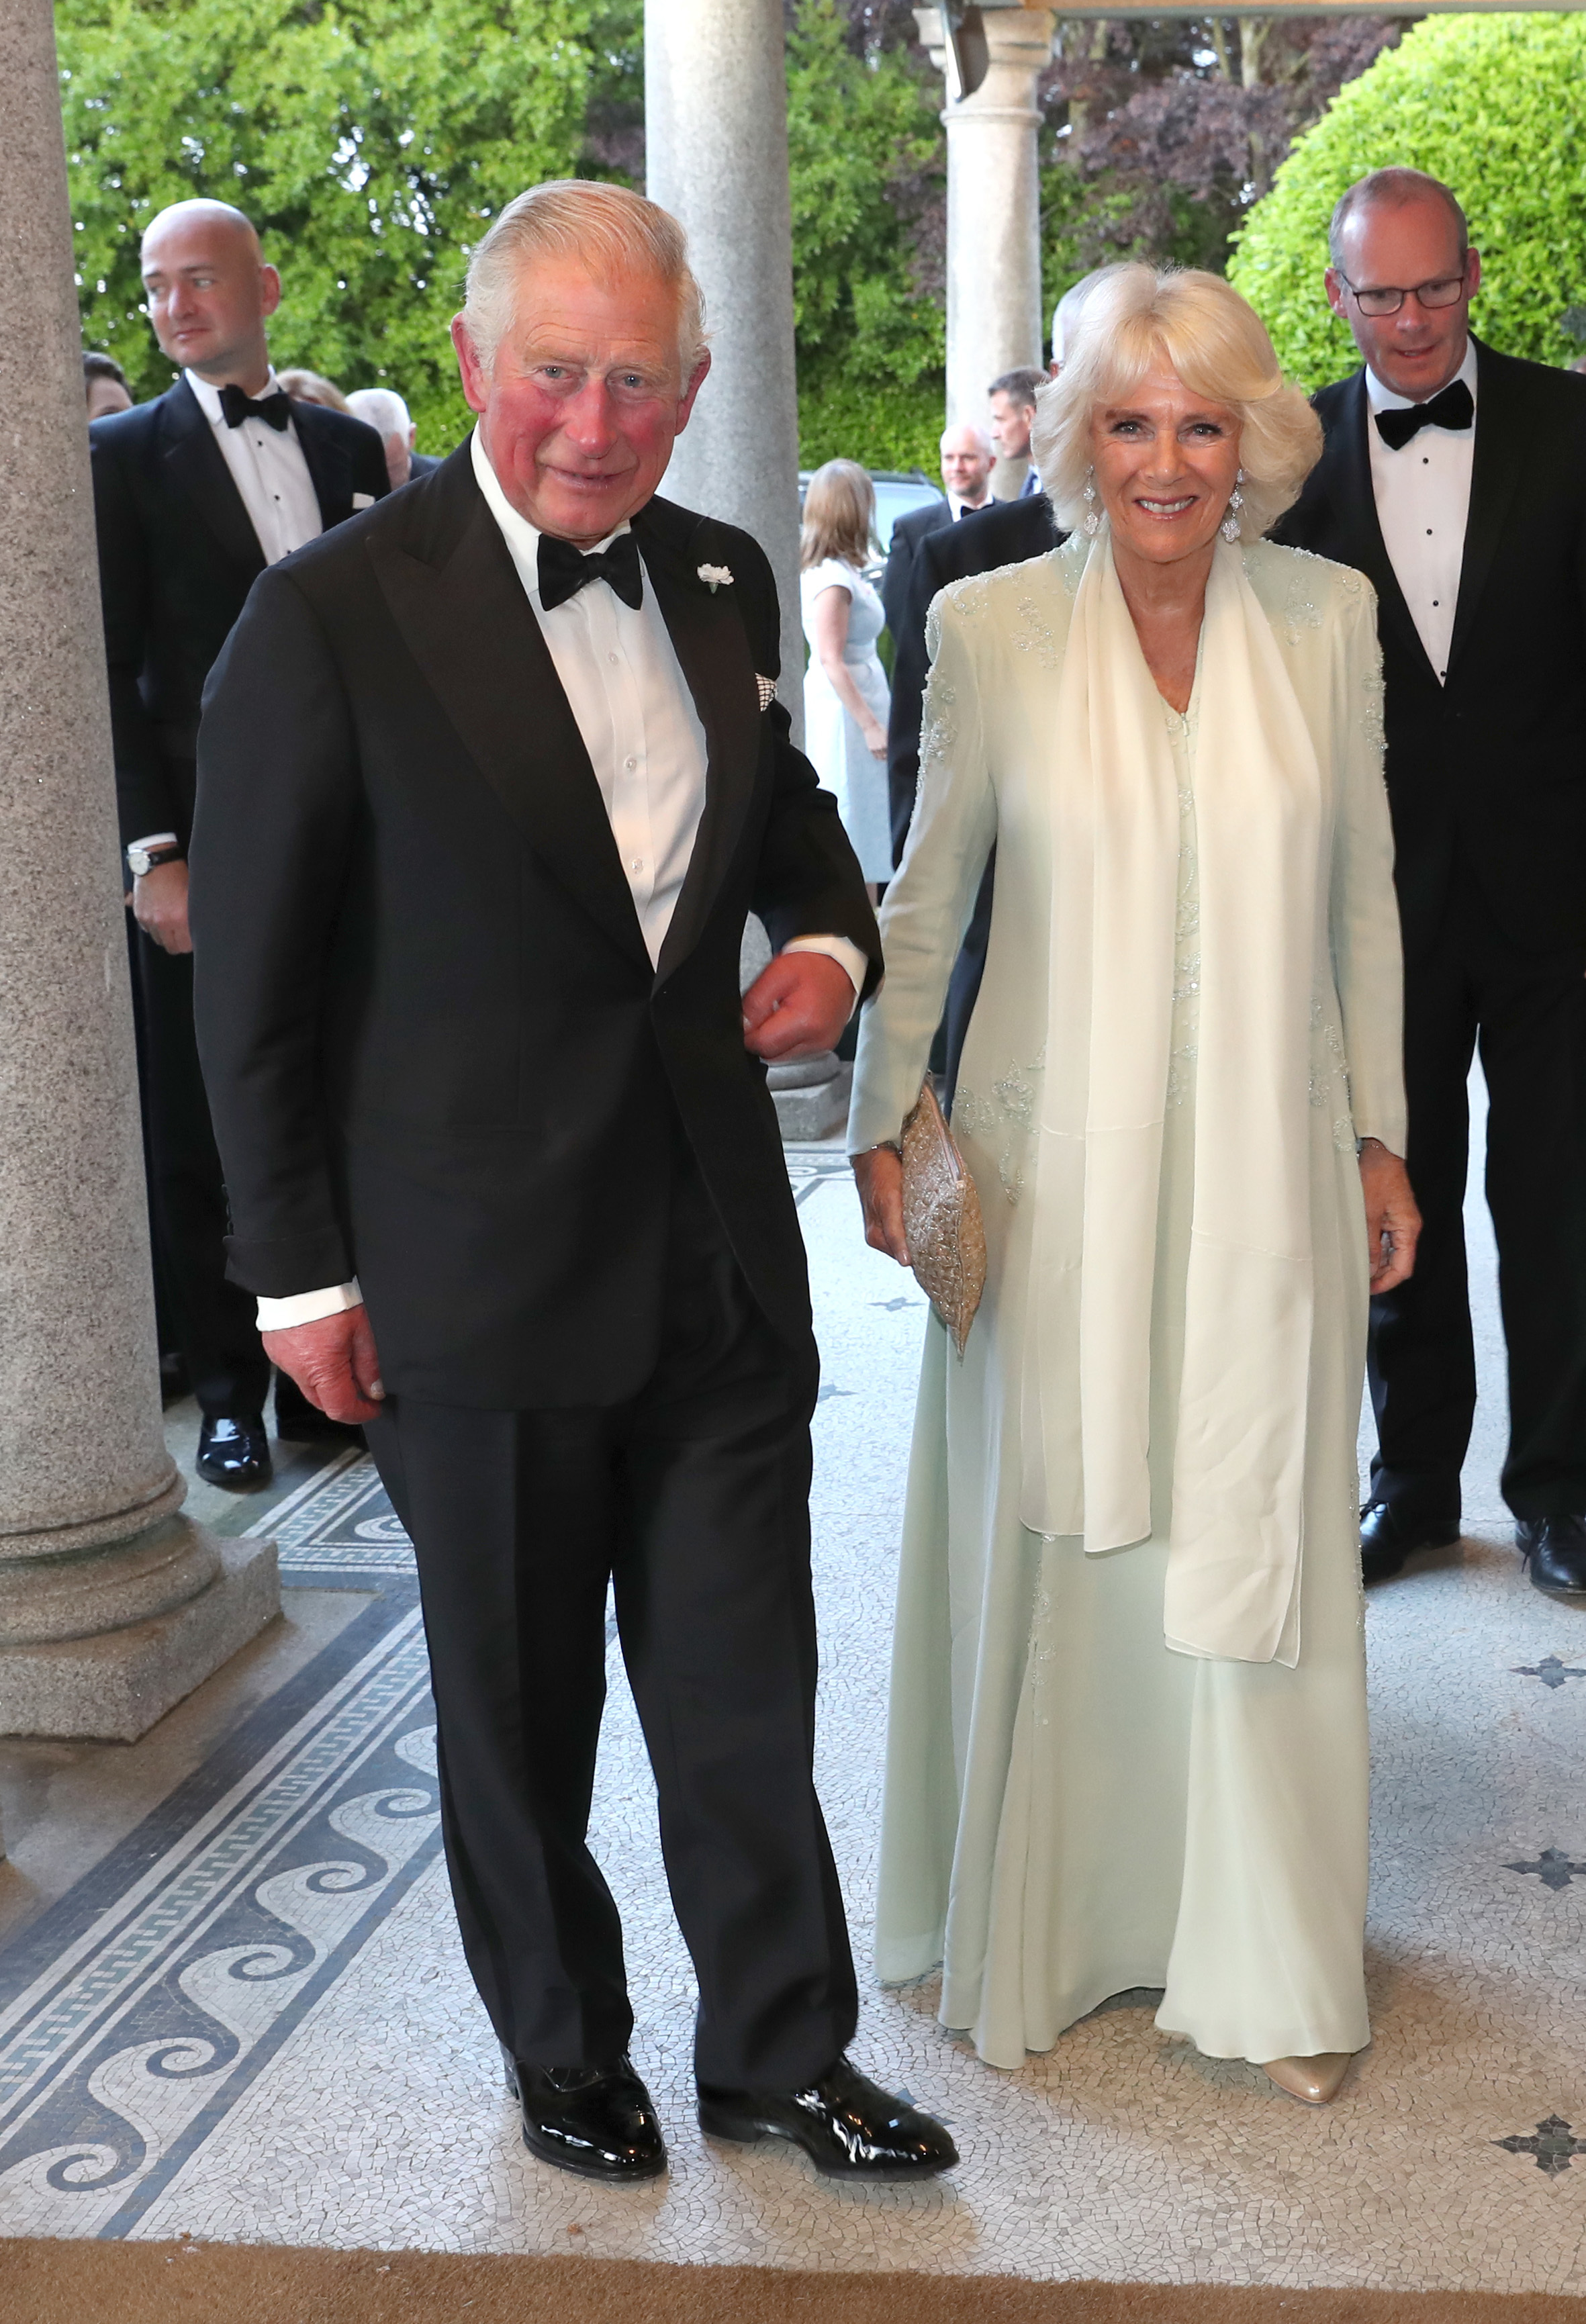 Prince Charles and Duchess Camilla: Best photos from their 2019 royal visit to Ireland